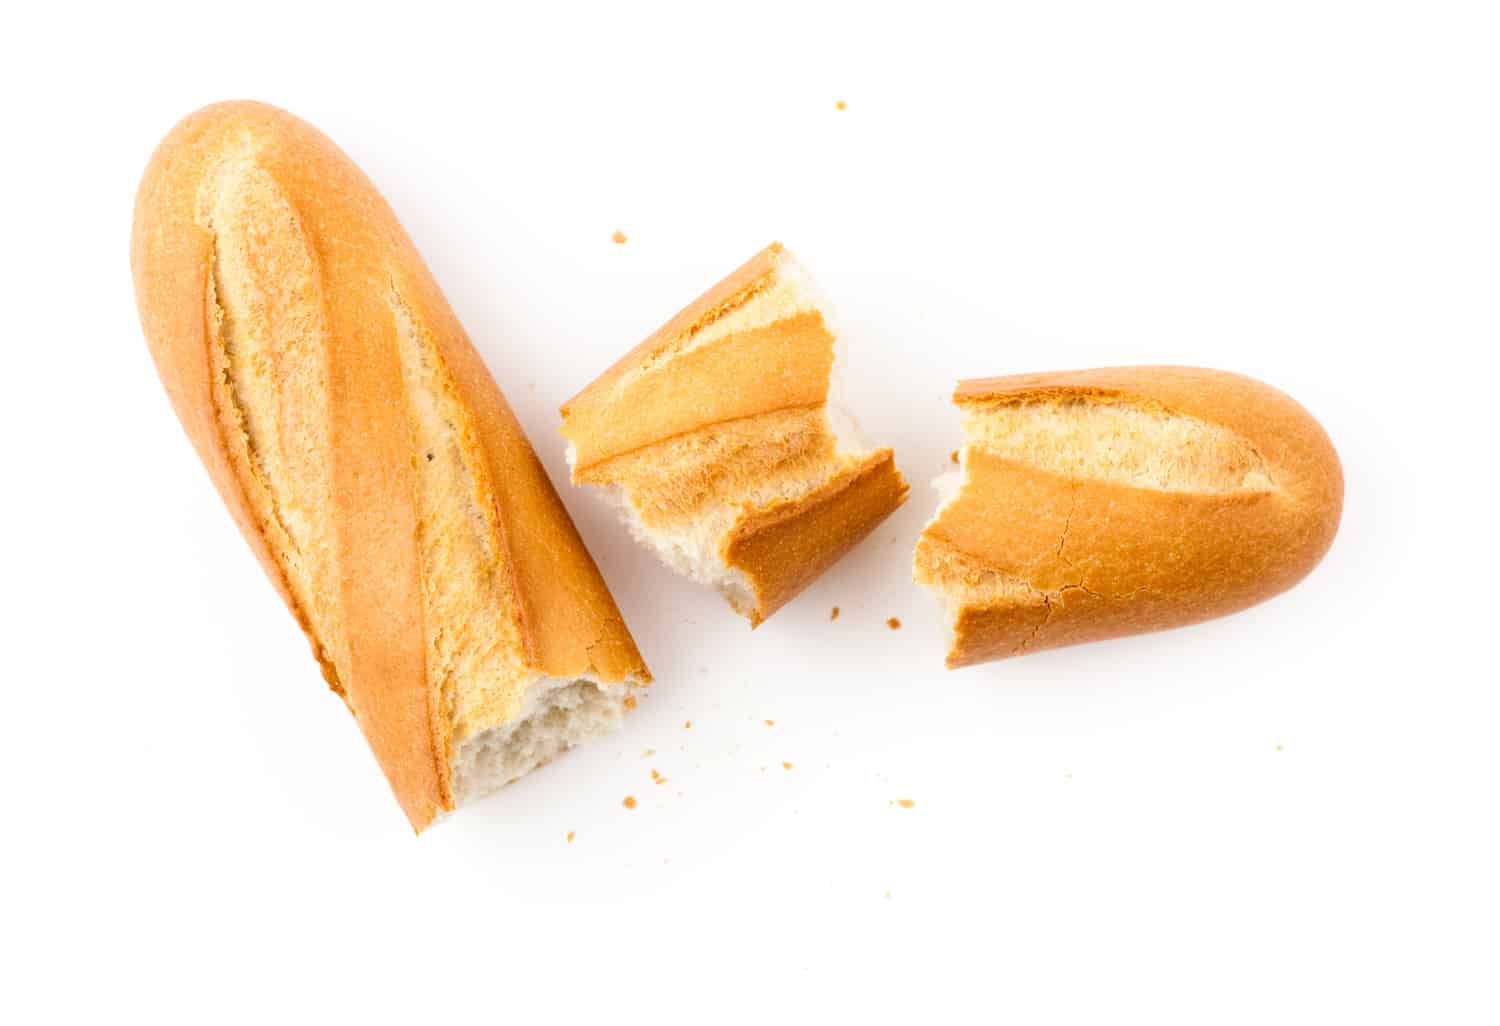 Baguette isolated on white, broken in pieces, crusty french bread